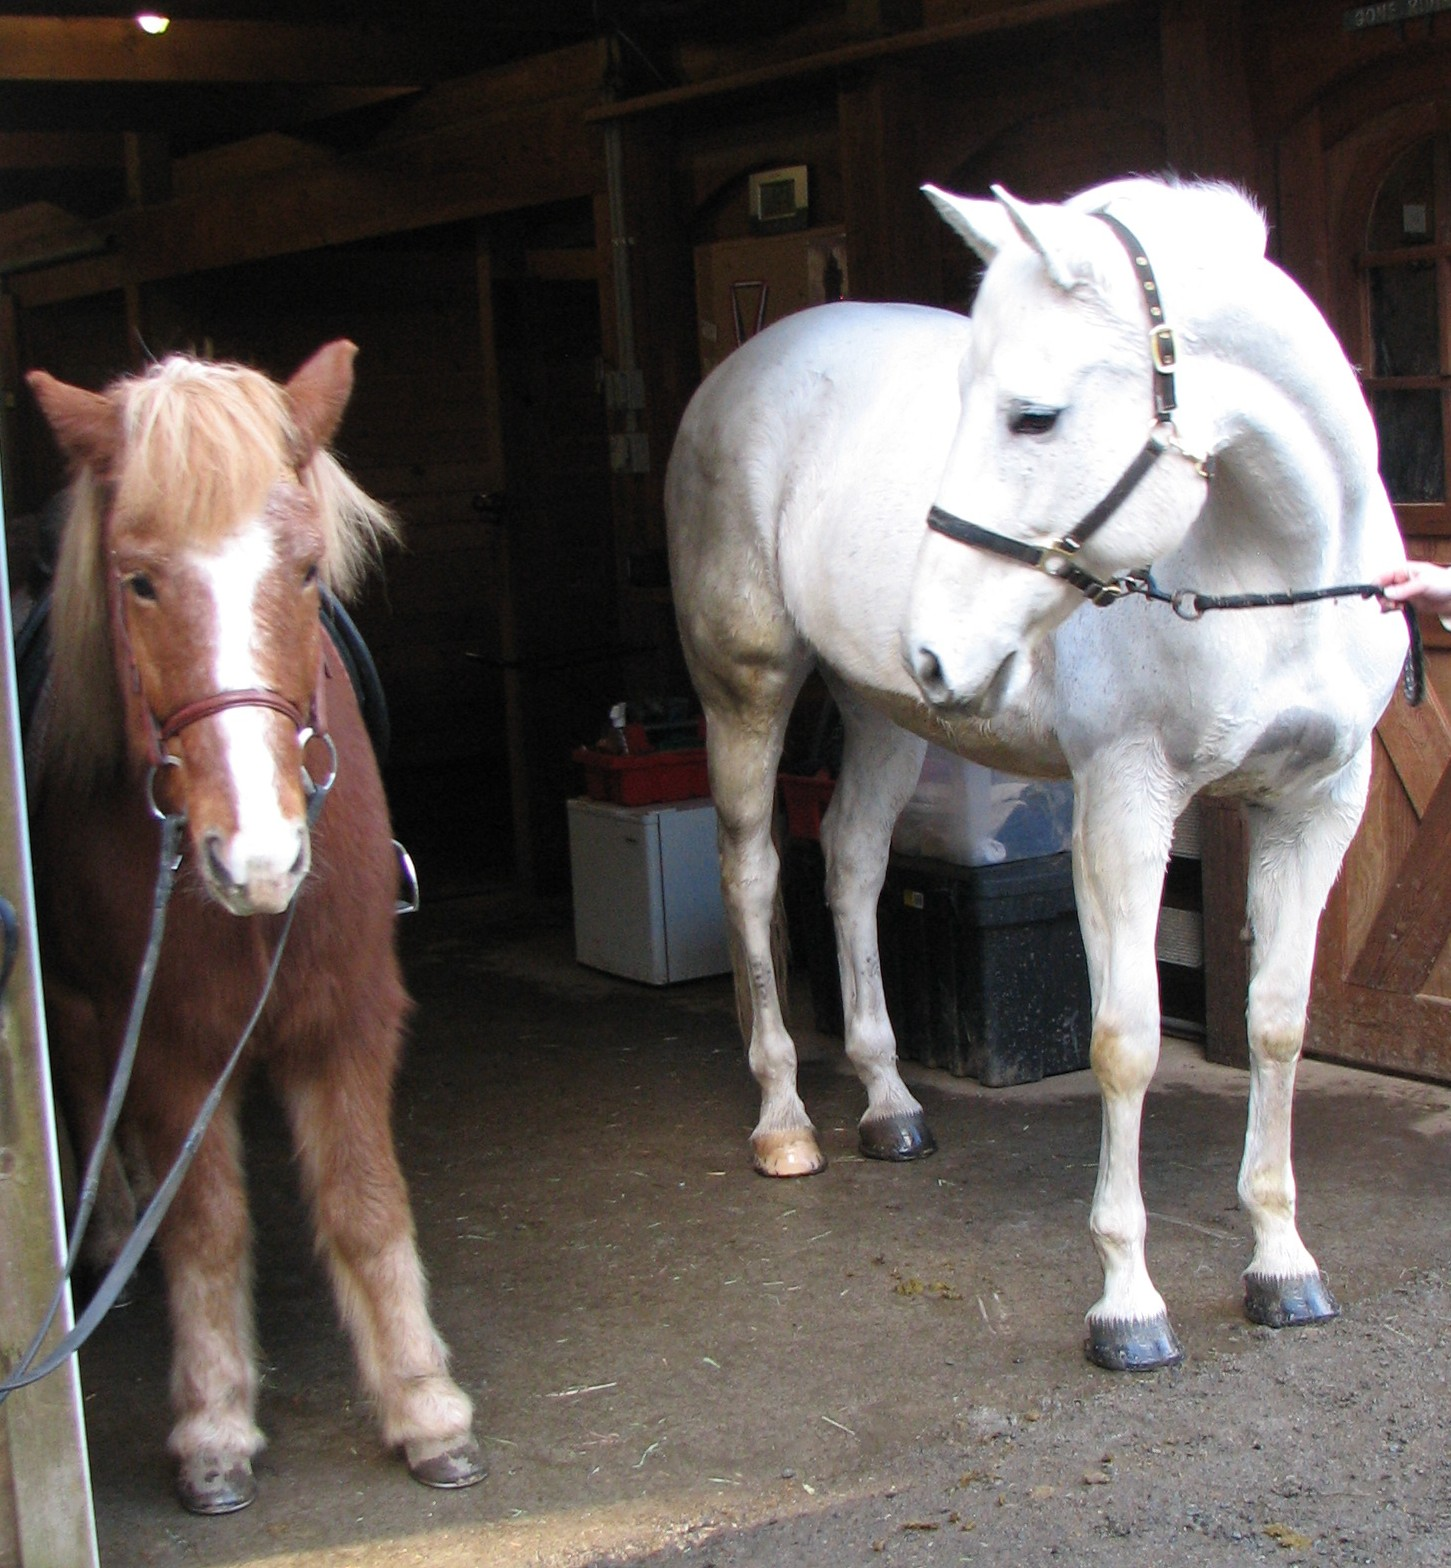 Horse Essay, What do you think...informative?